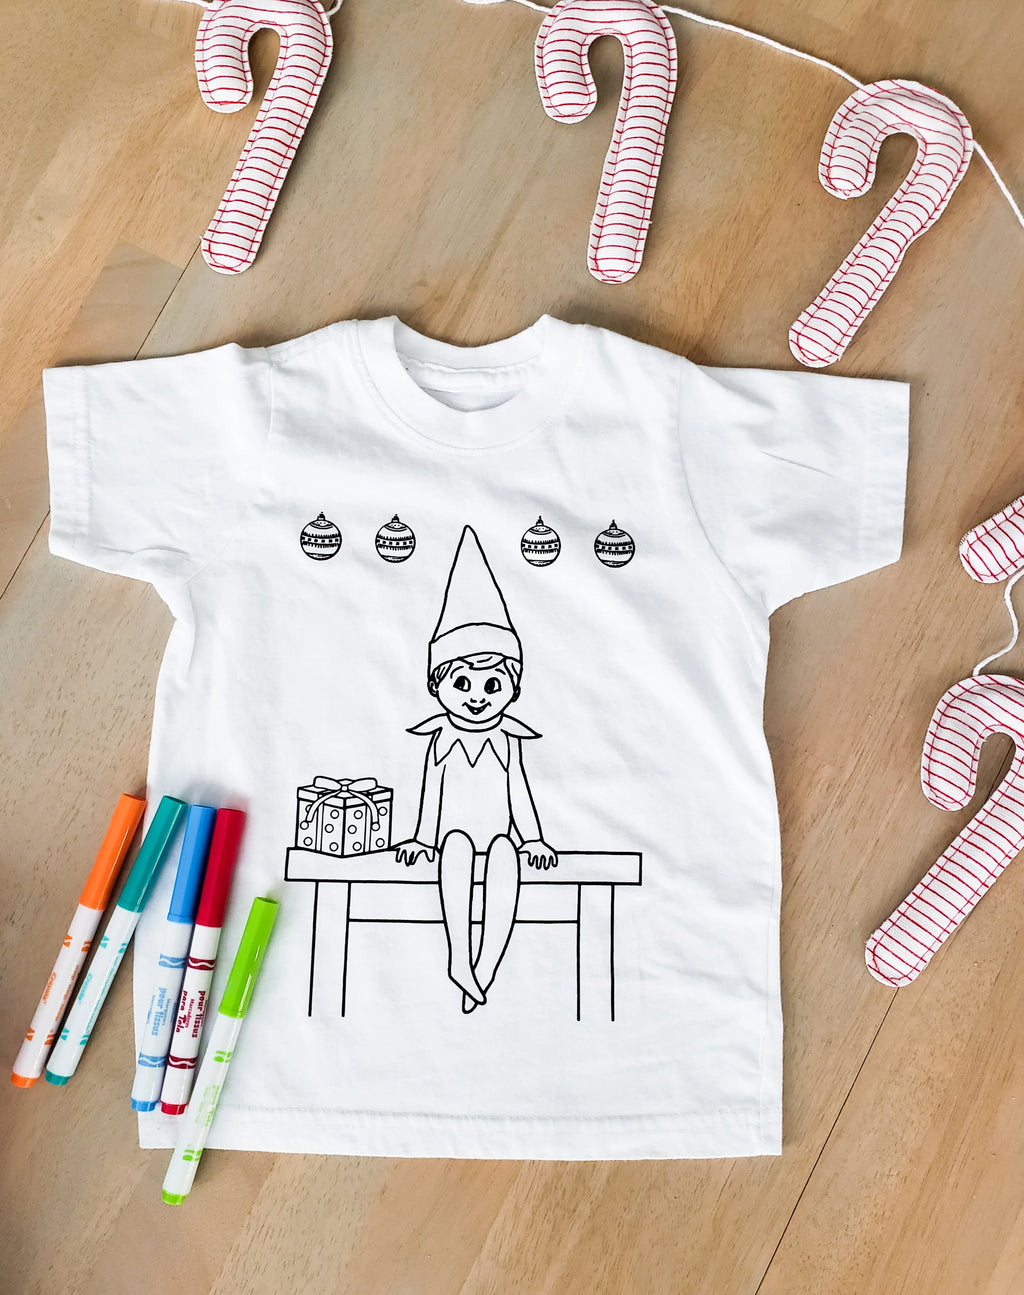 Elf Coloring Shirt with Fabric Markers